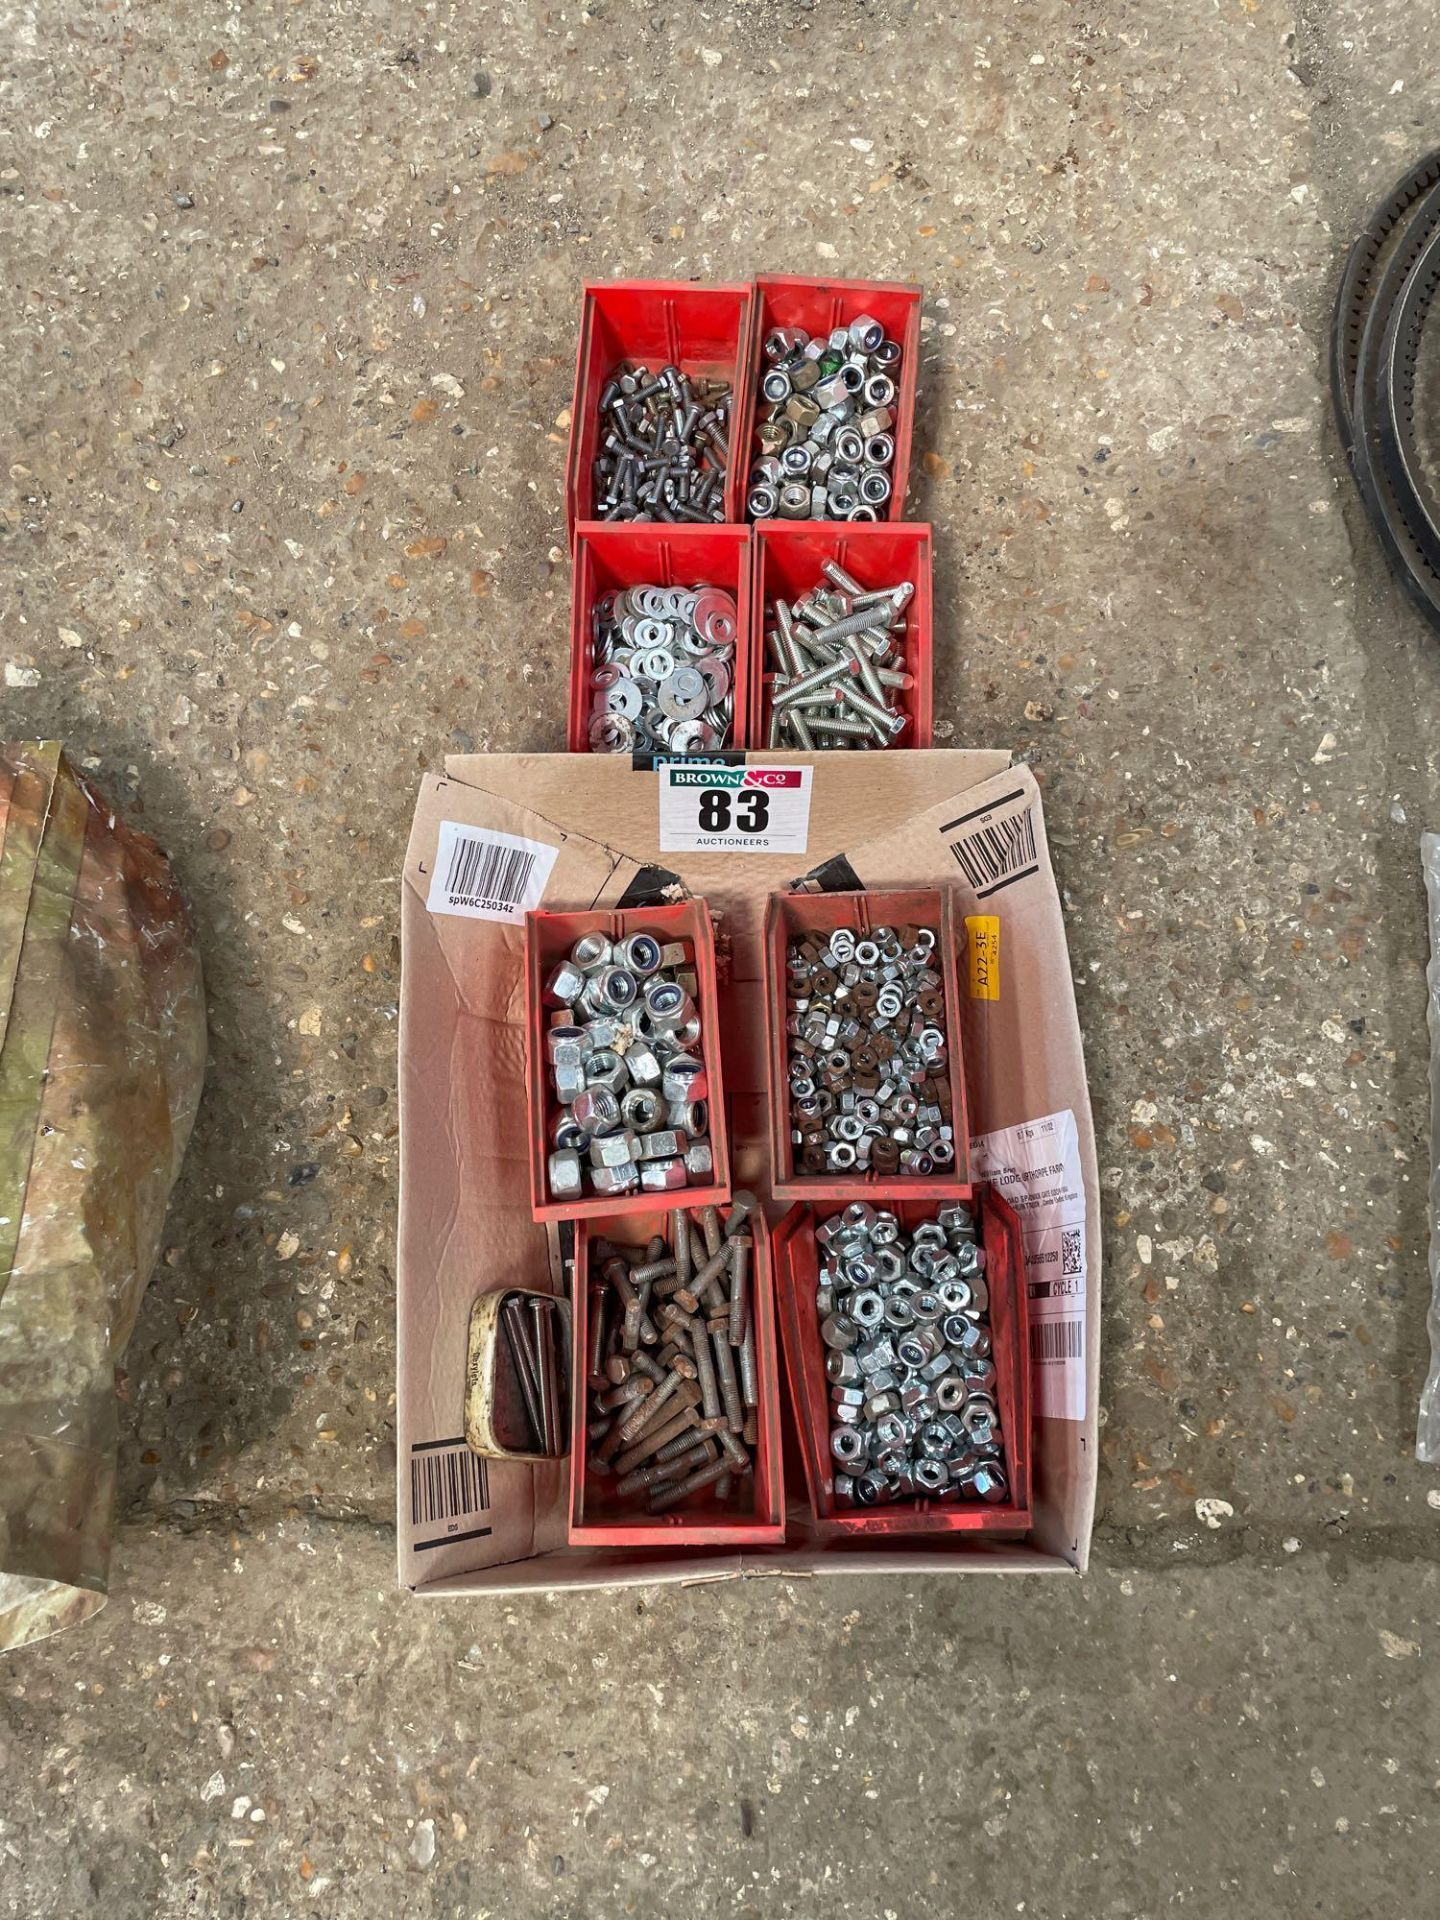 Quantity nuts, bolts and washers